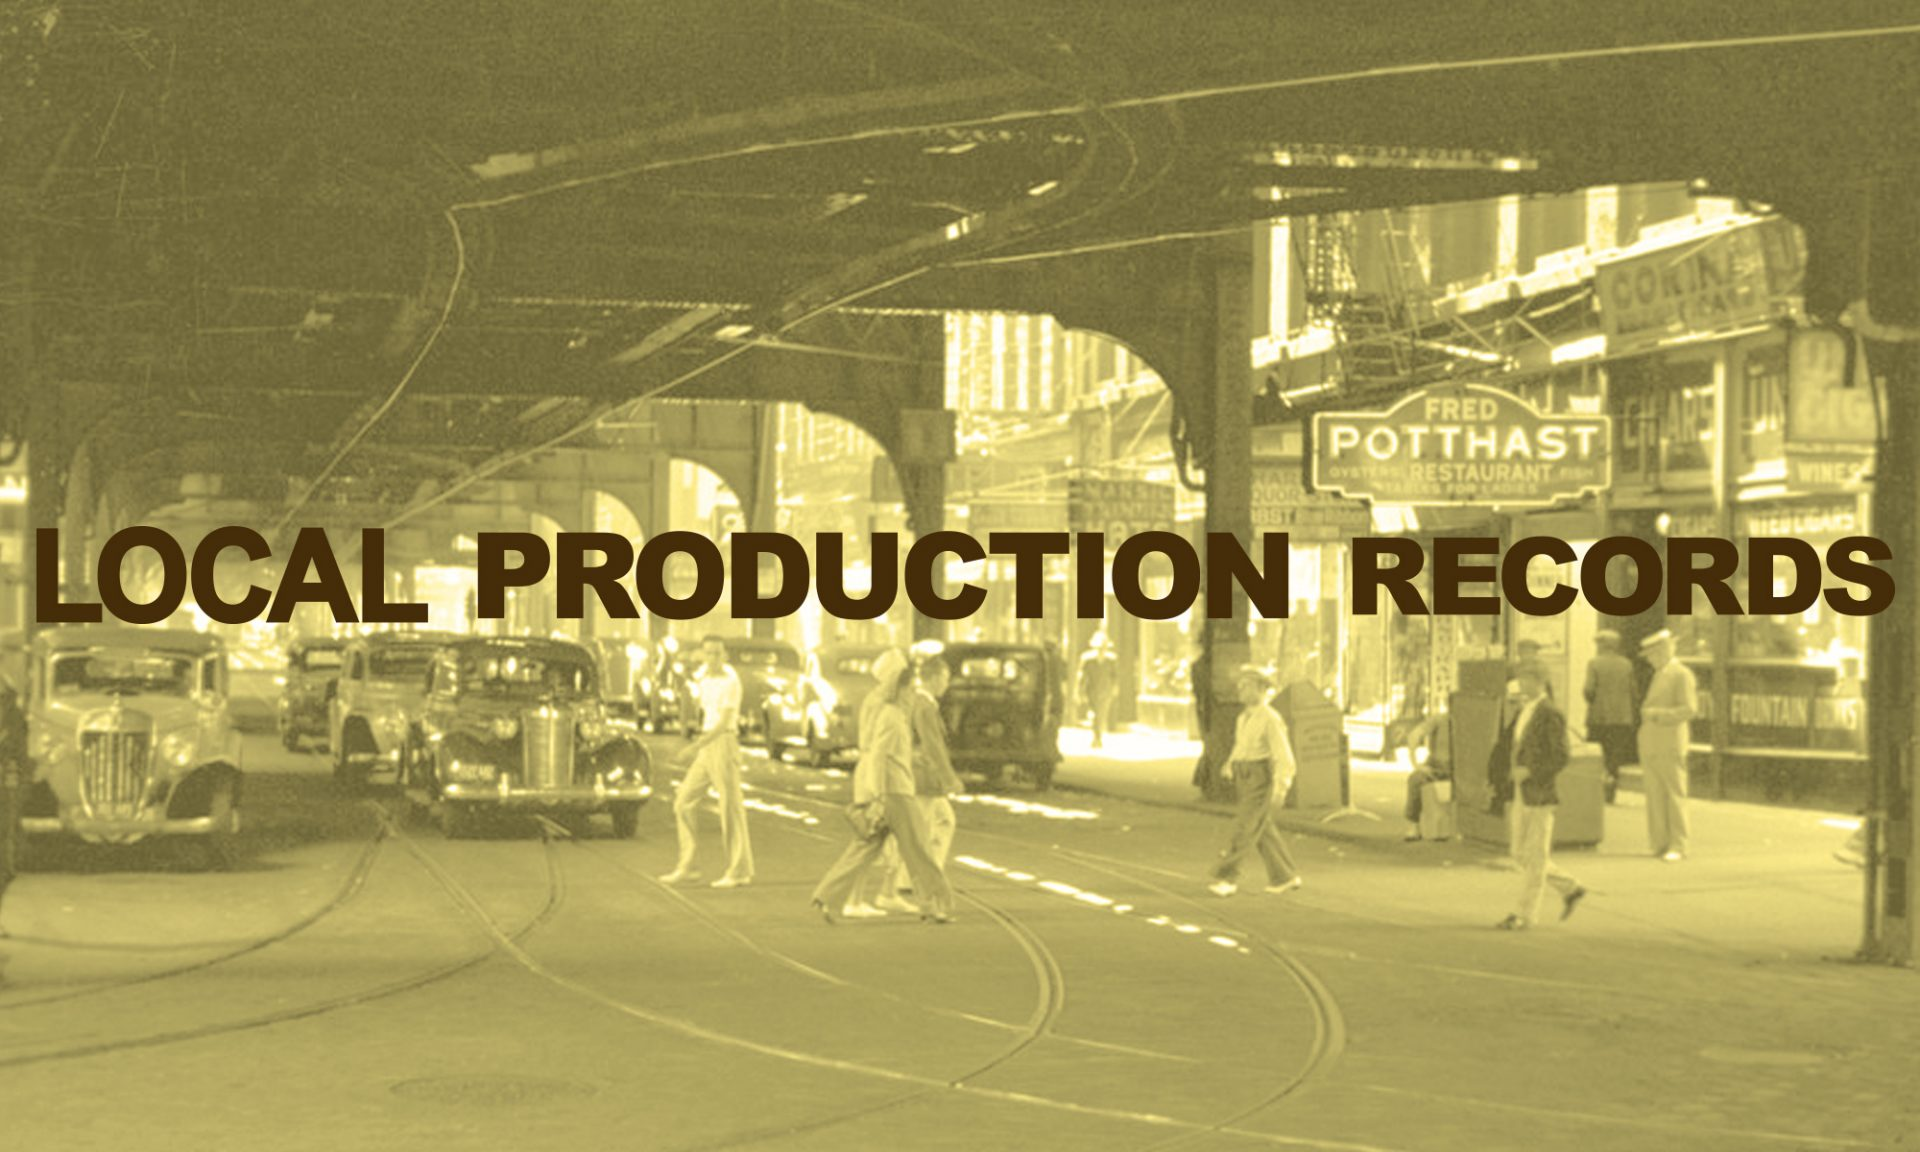 LOCAL PRODUCTION RECORDS